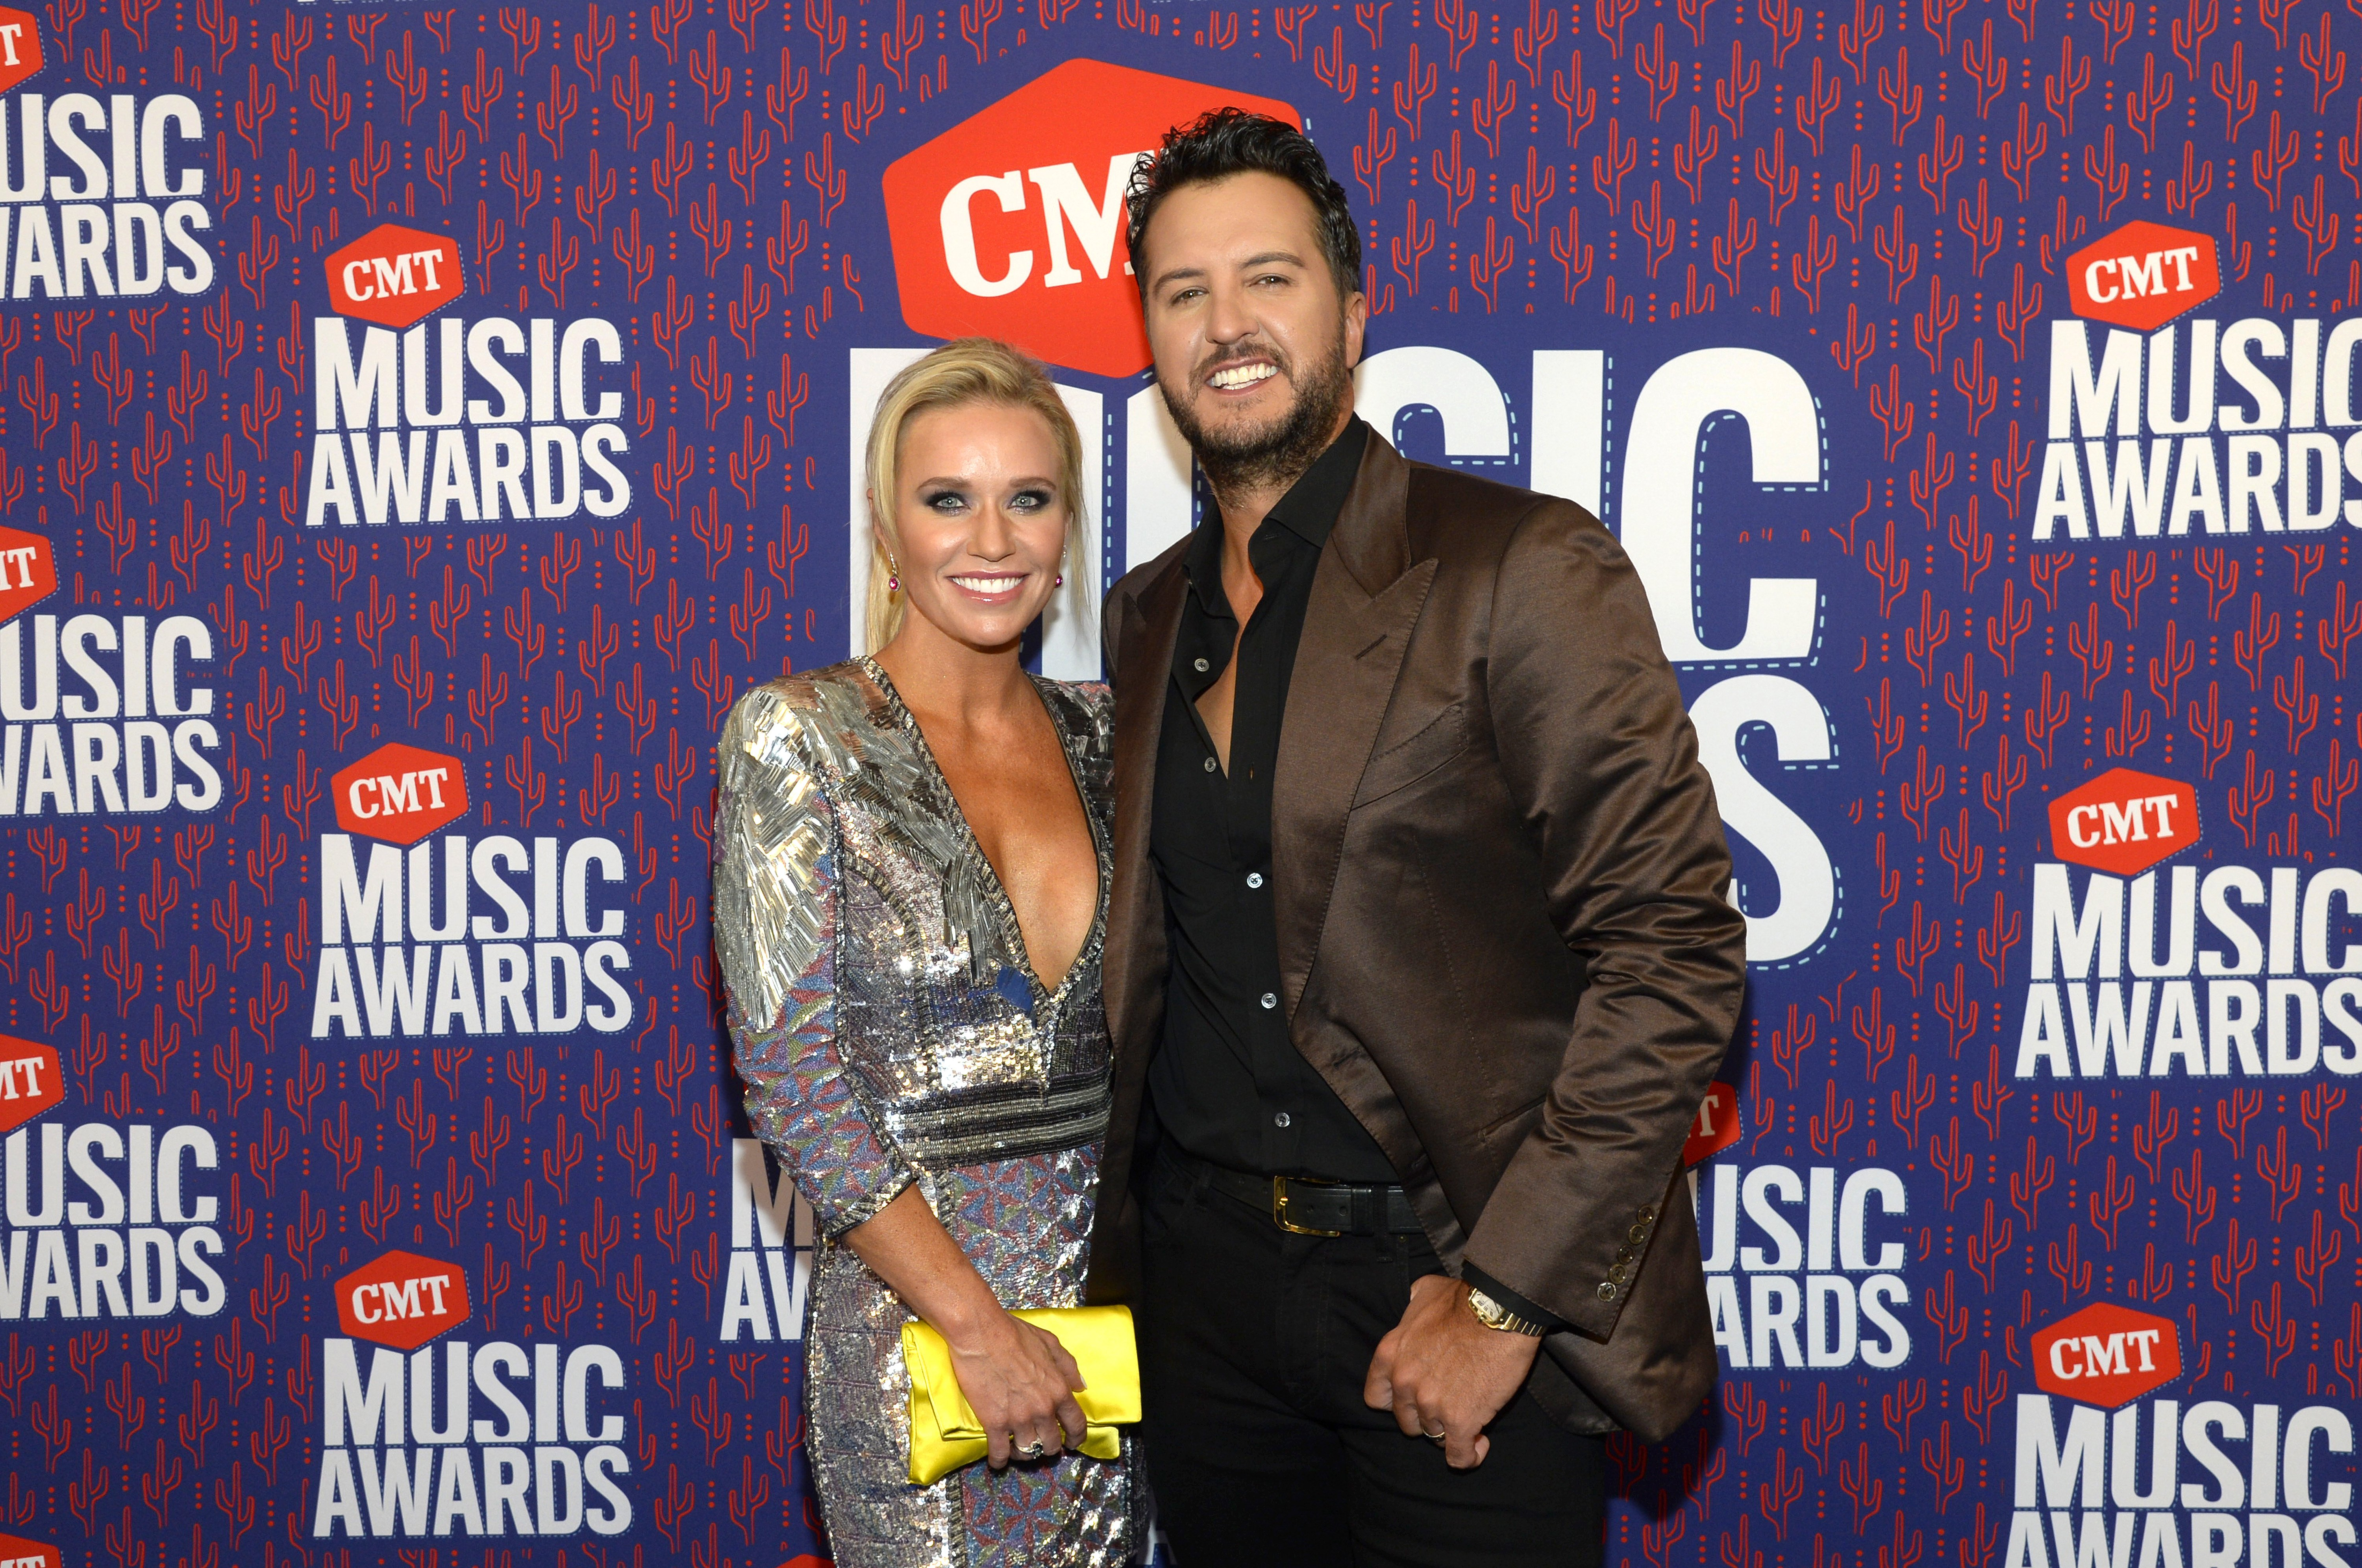 Luke Bryan and his wife, Caroline Boyer pictured at the CMT Music Awards, 2019, Nashville, Tennessee. | Photo: Getty Images